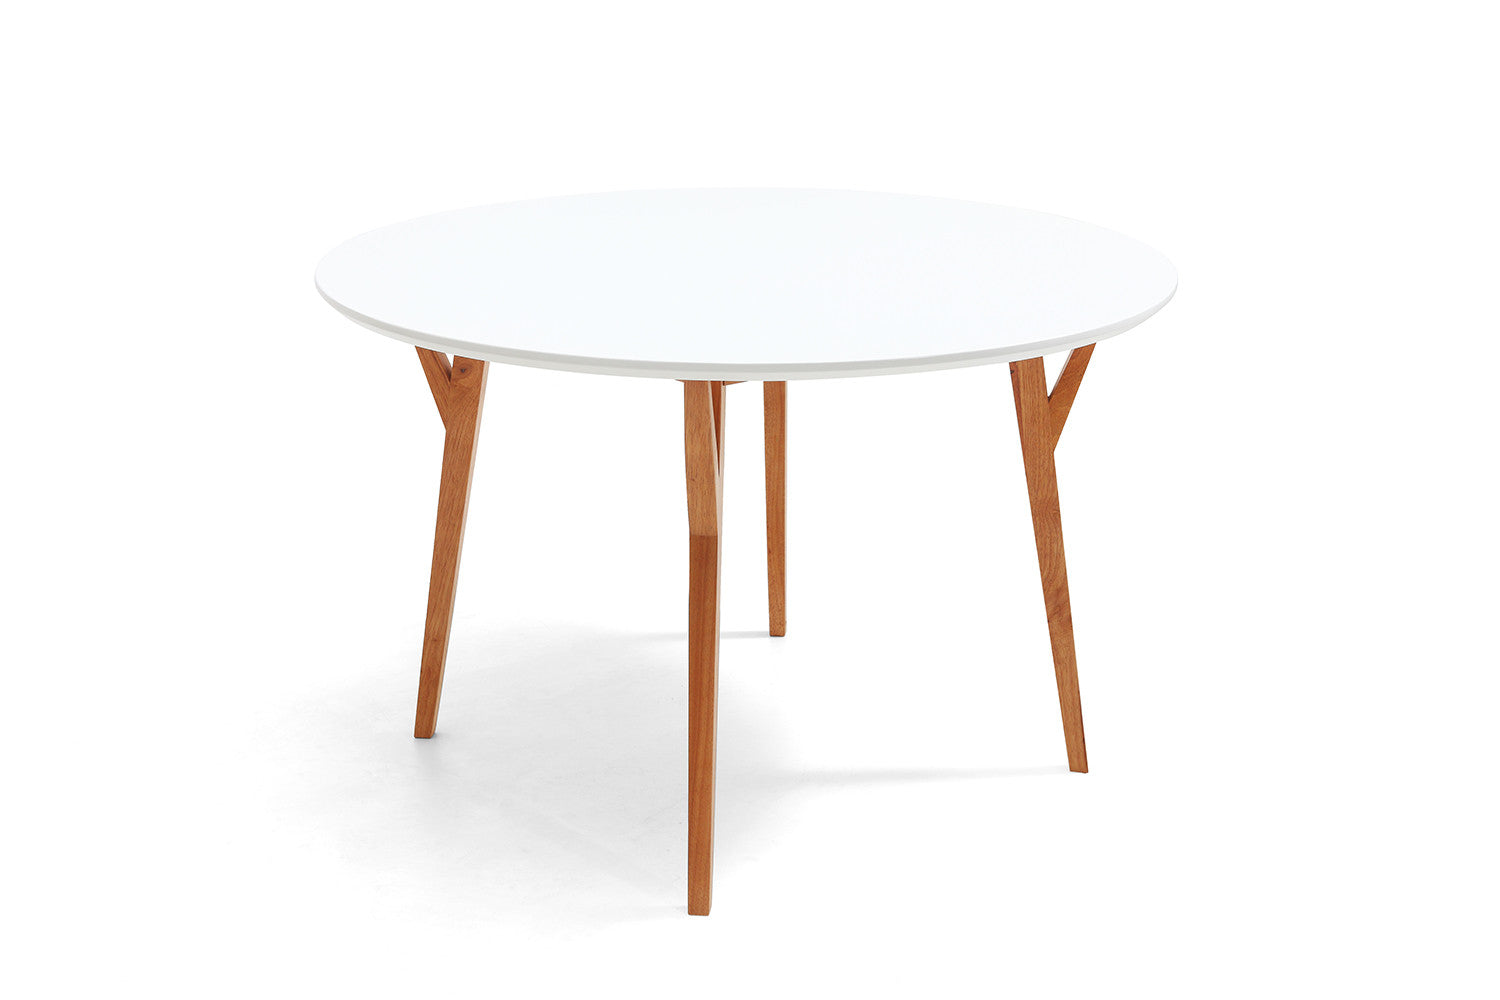 Table de salle manger ronde design scandinave moesa for Table salle manger plateau